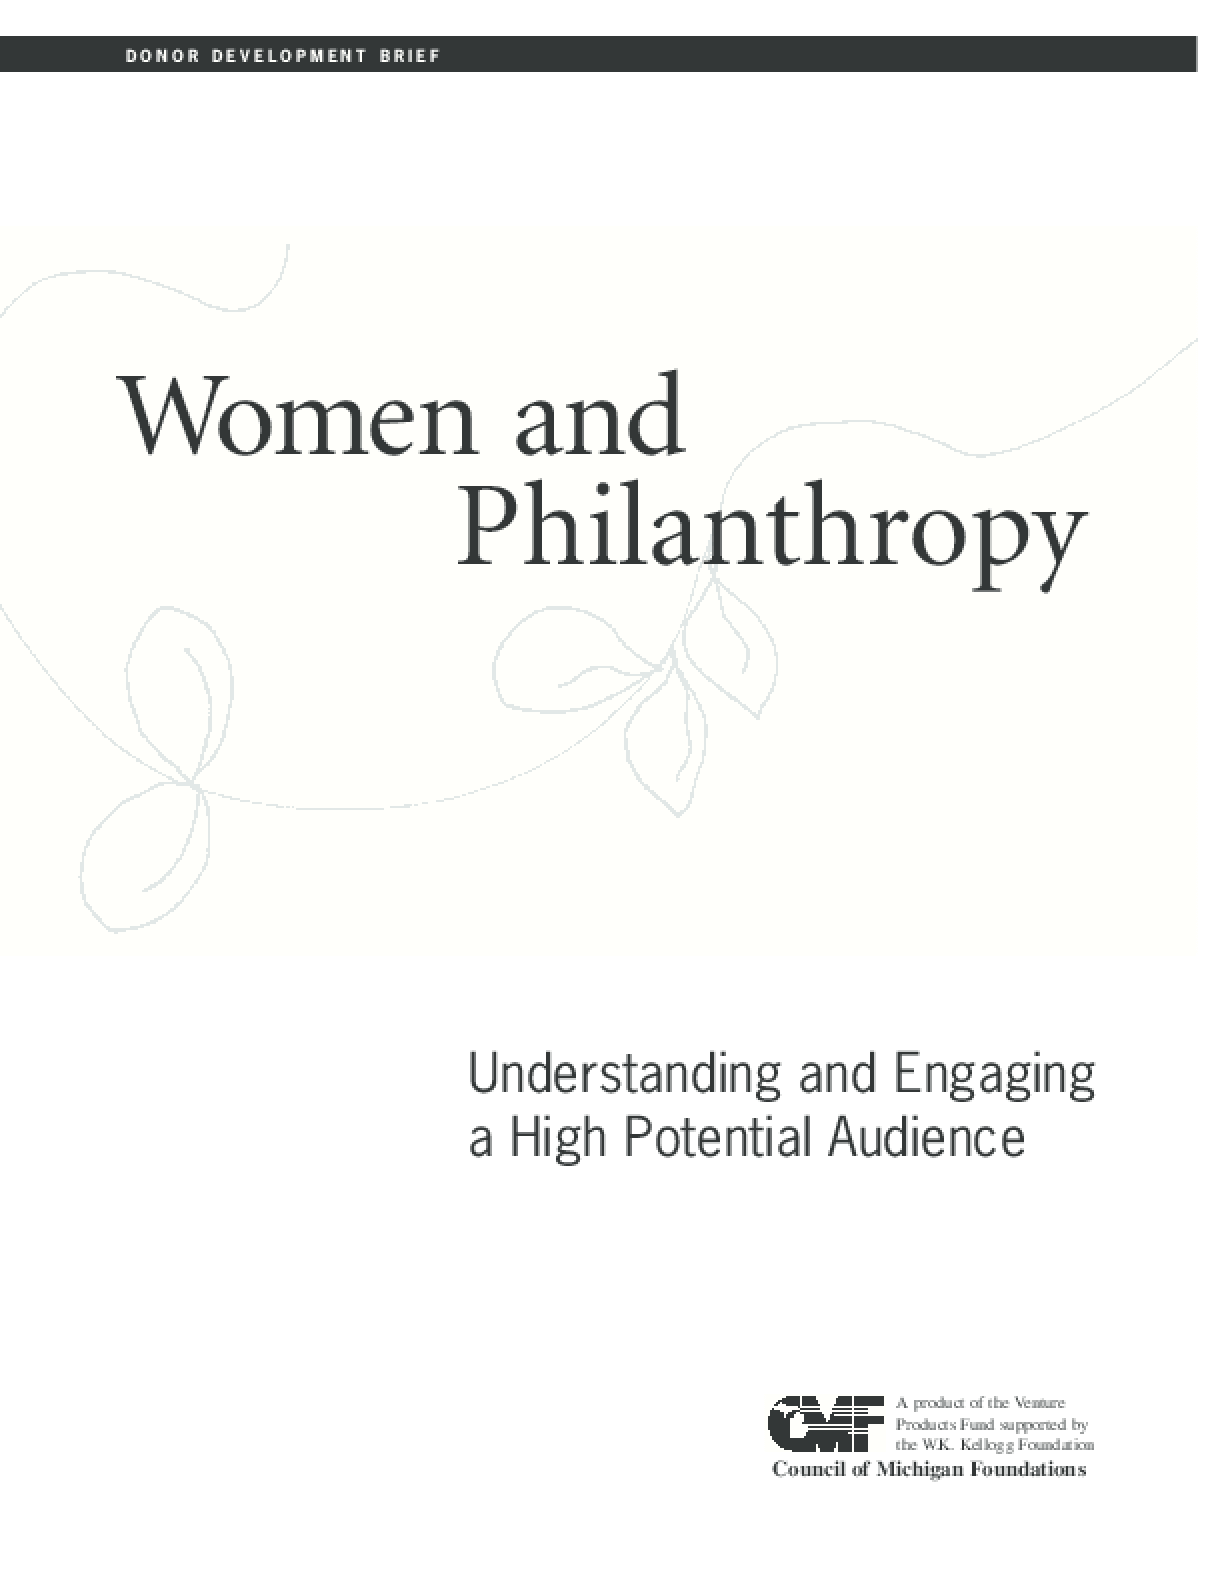 Women and Philanthropy: Understanding and Engaging a High Potential Audience